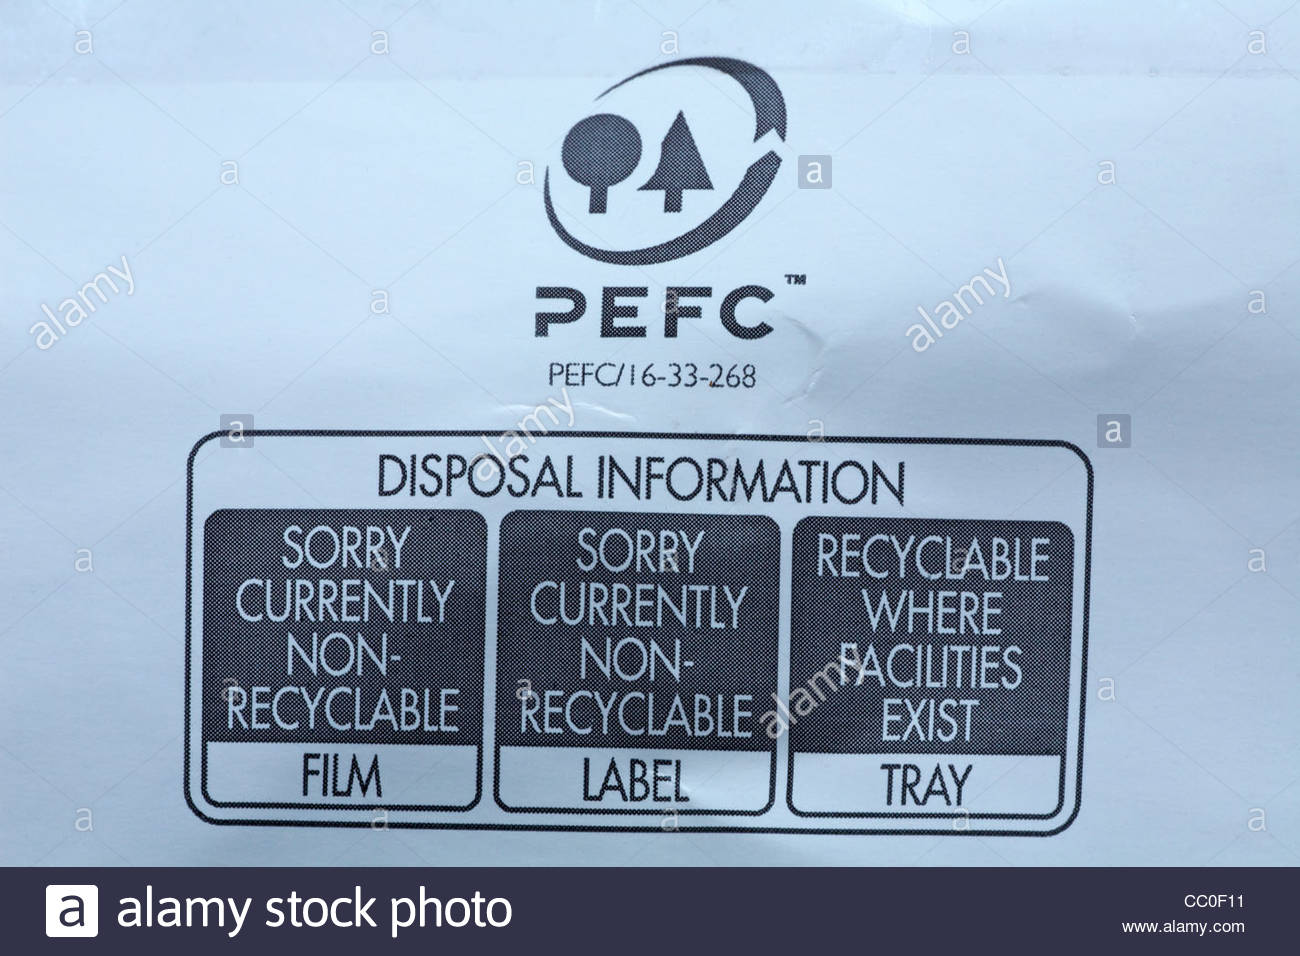 Disposal information on food packaging - Stock Image